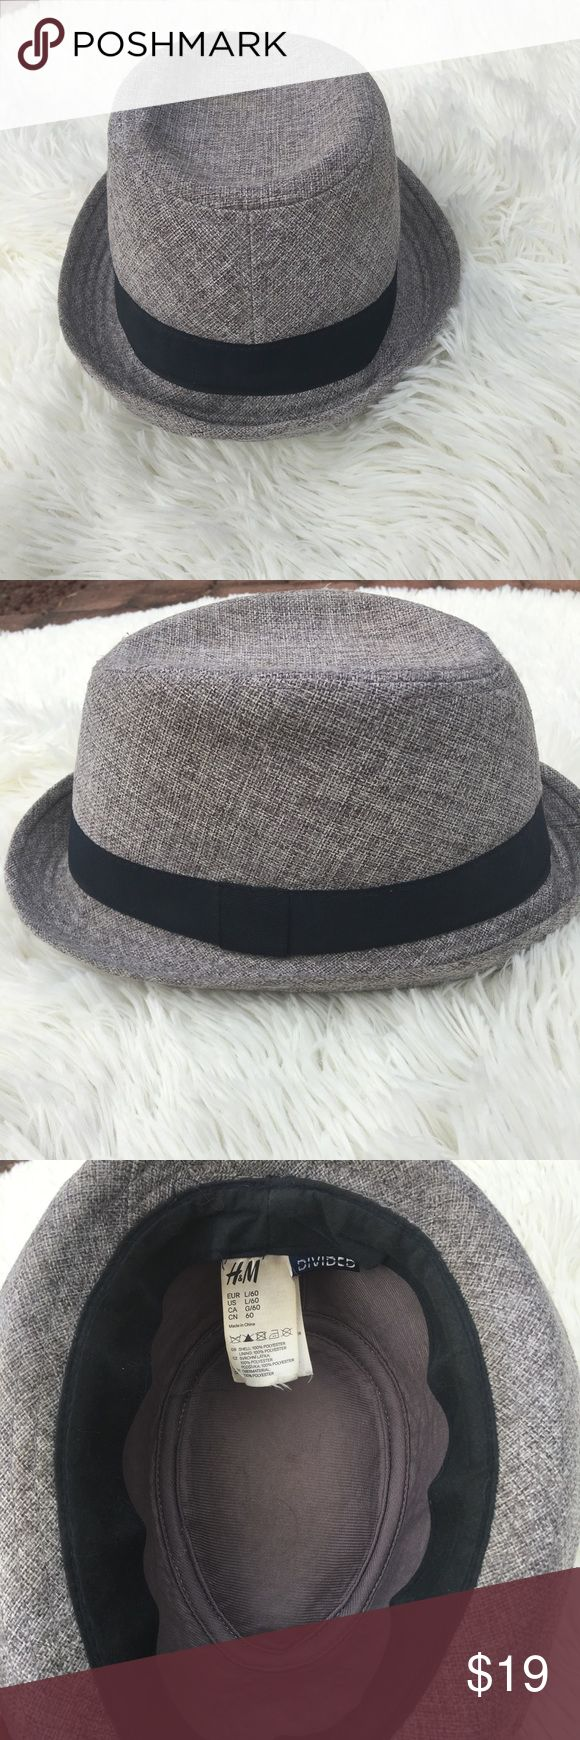 H & M grey divided fedora hipster Men's hat Preowned in very good condition with no noticeable rips tears or stains. Shell is 100% polyester. Size is a large/60. h & m Accessories Hats